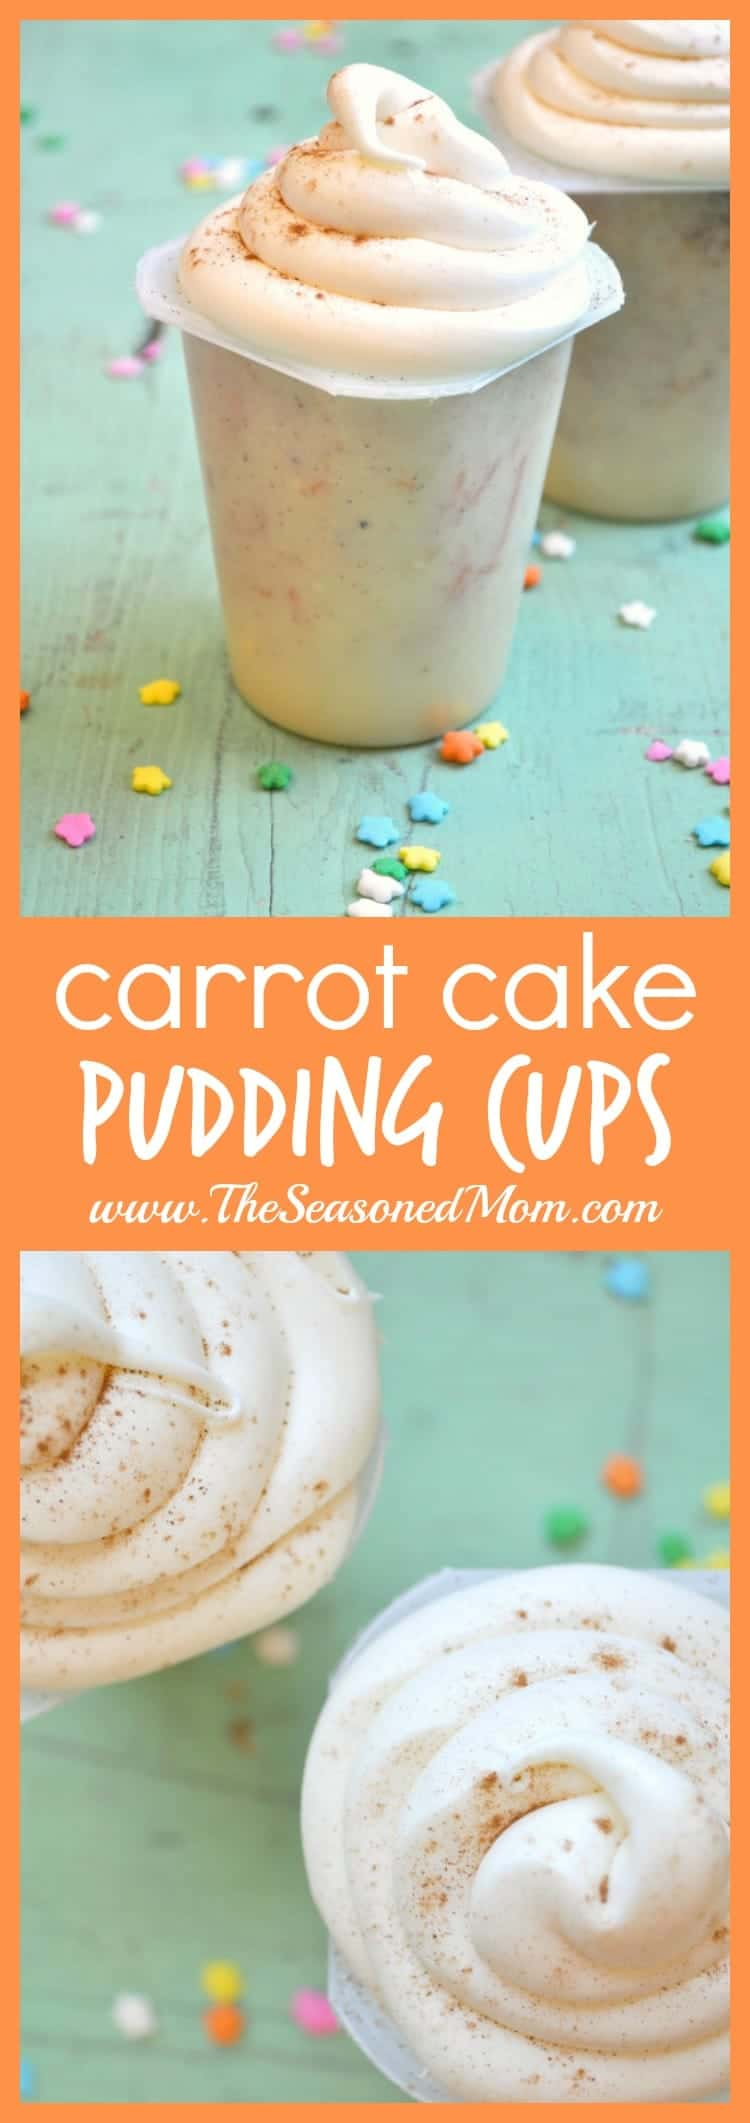 Carrot Cake Pudding Cups